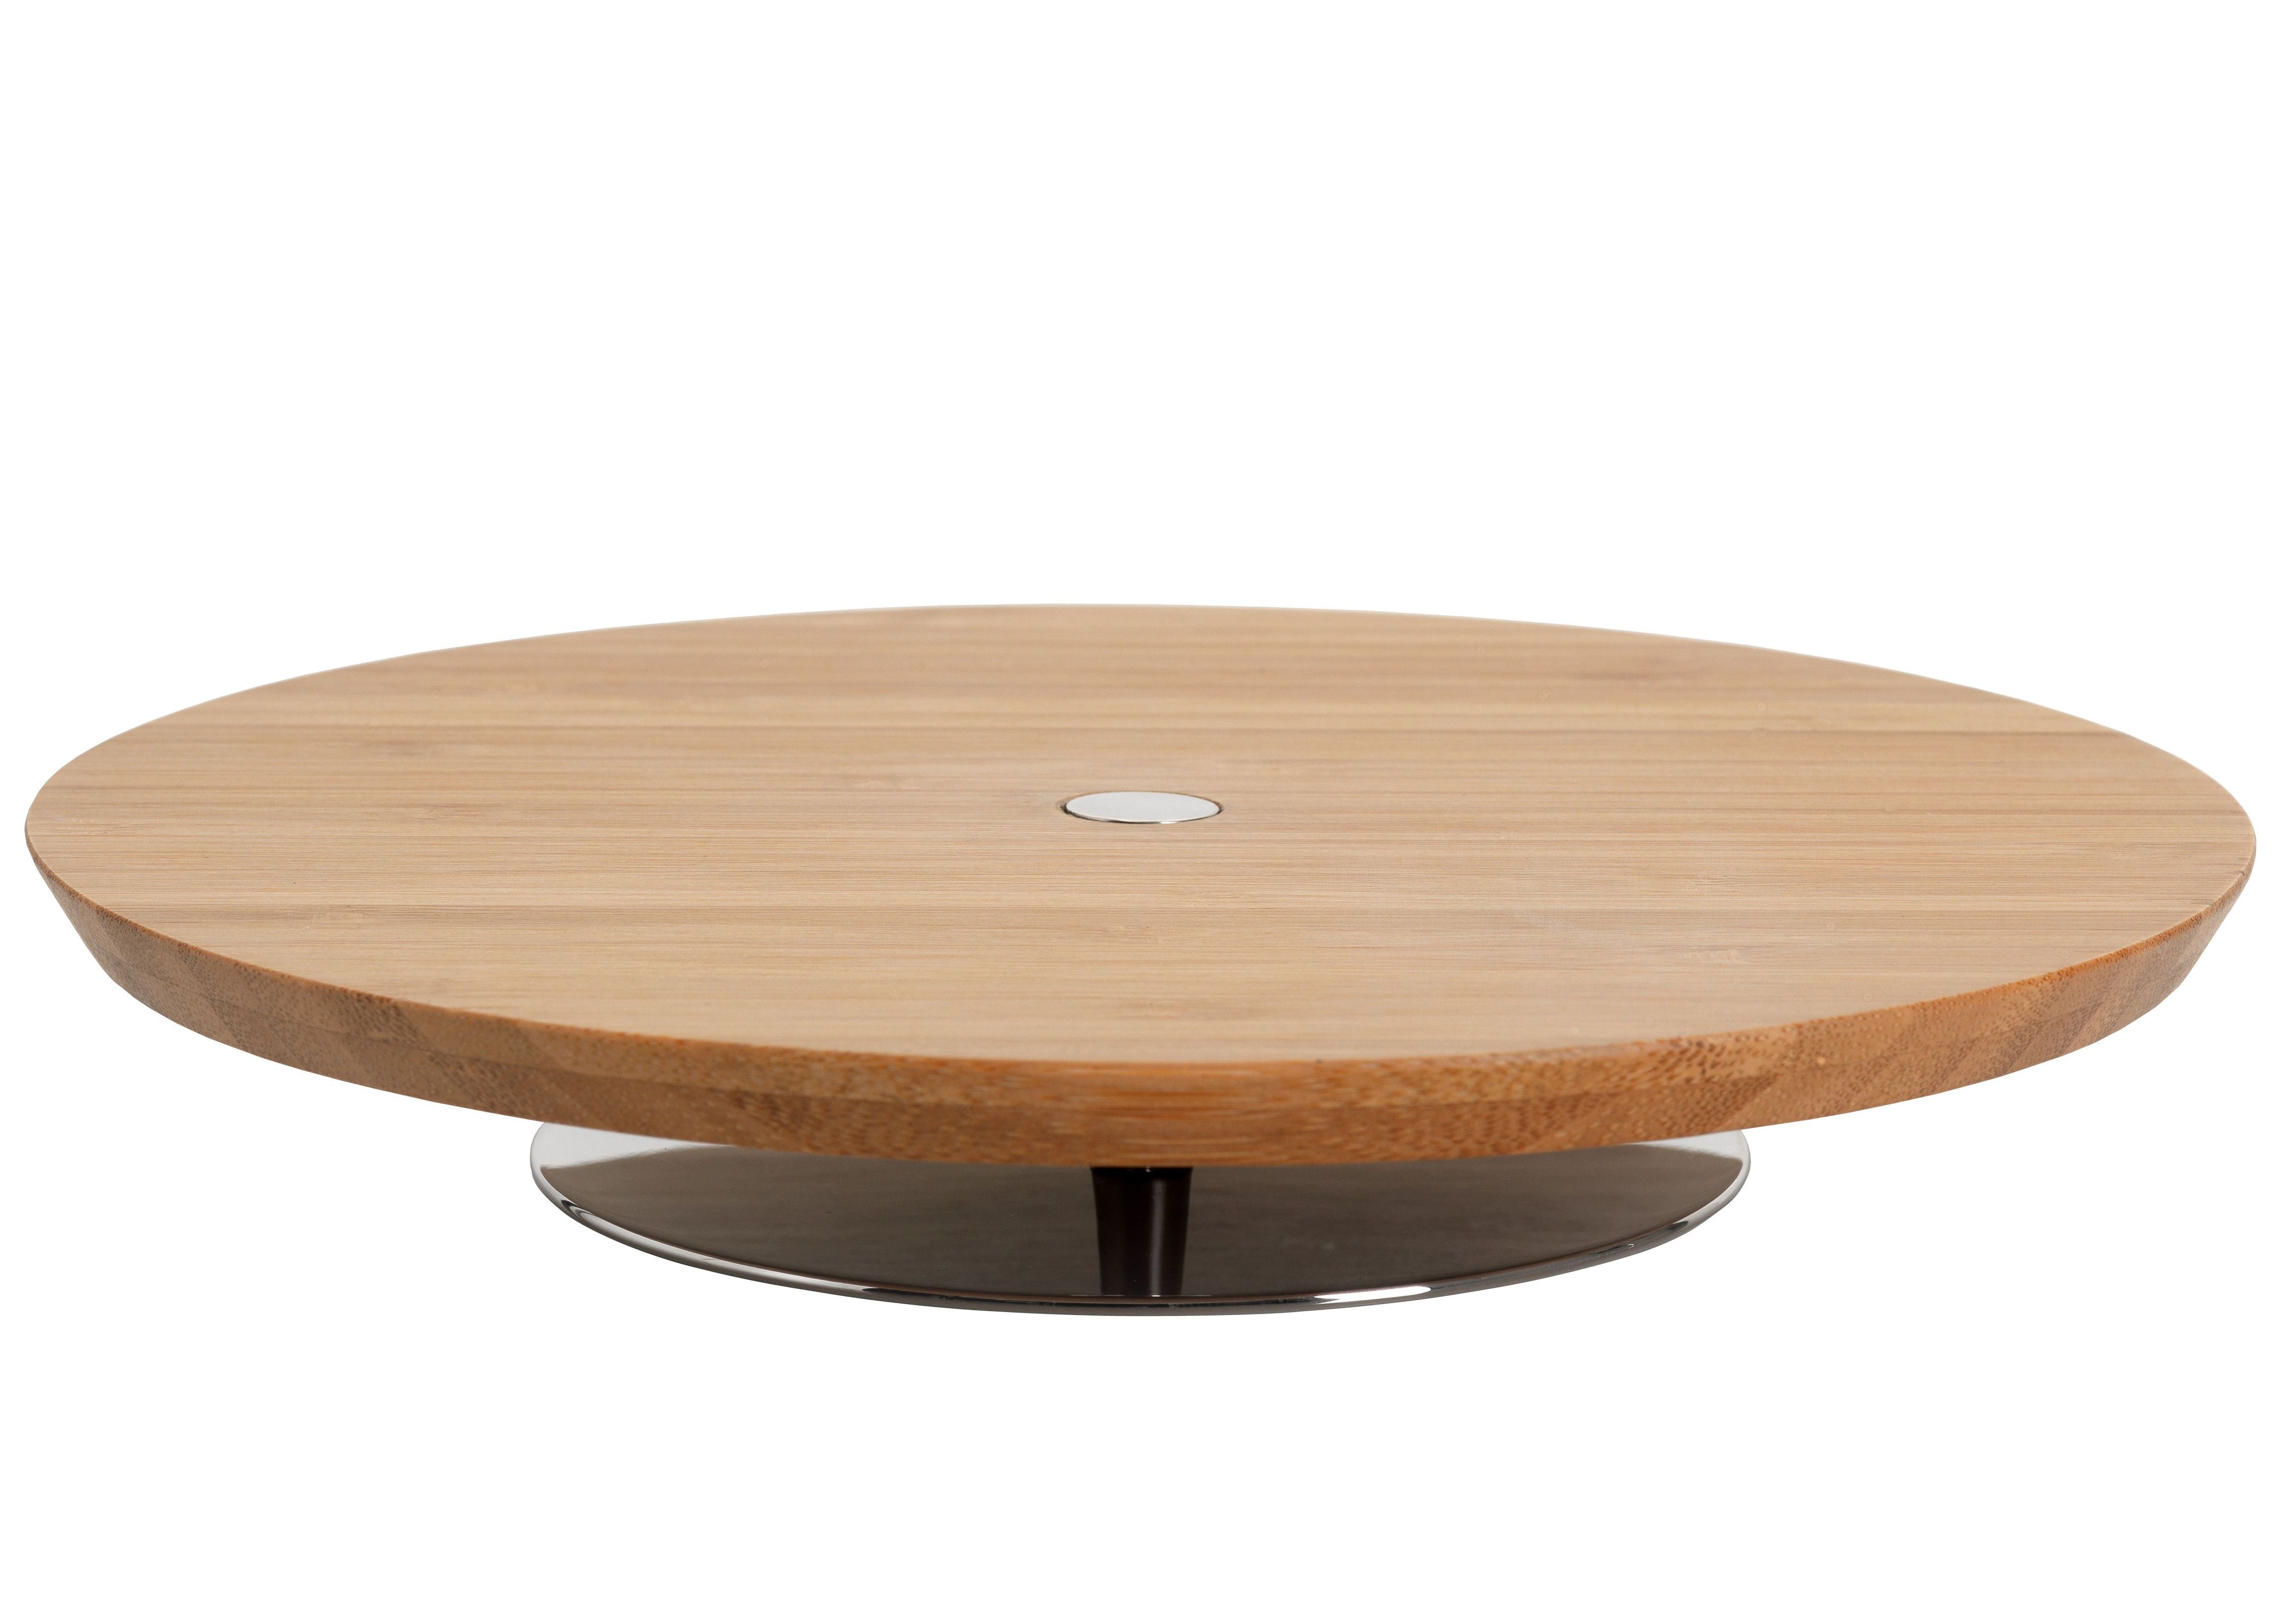 Tableware - Serving Plates - Ape Presentation tray - Ø 20 cm by Alessi - Natural wood & polished stainless steel - Stainless steel, Wood